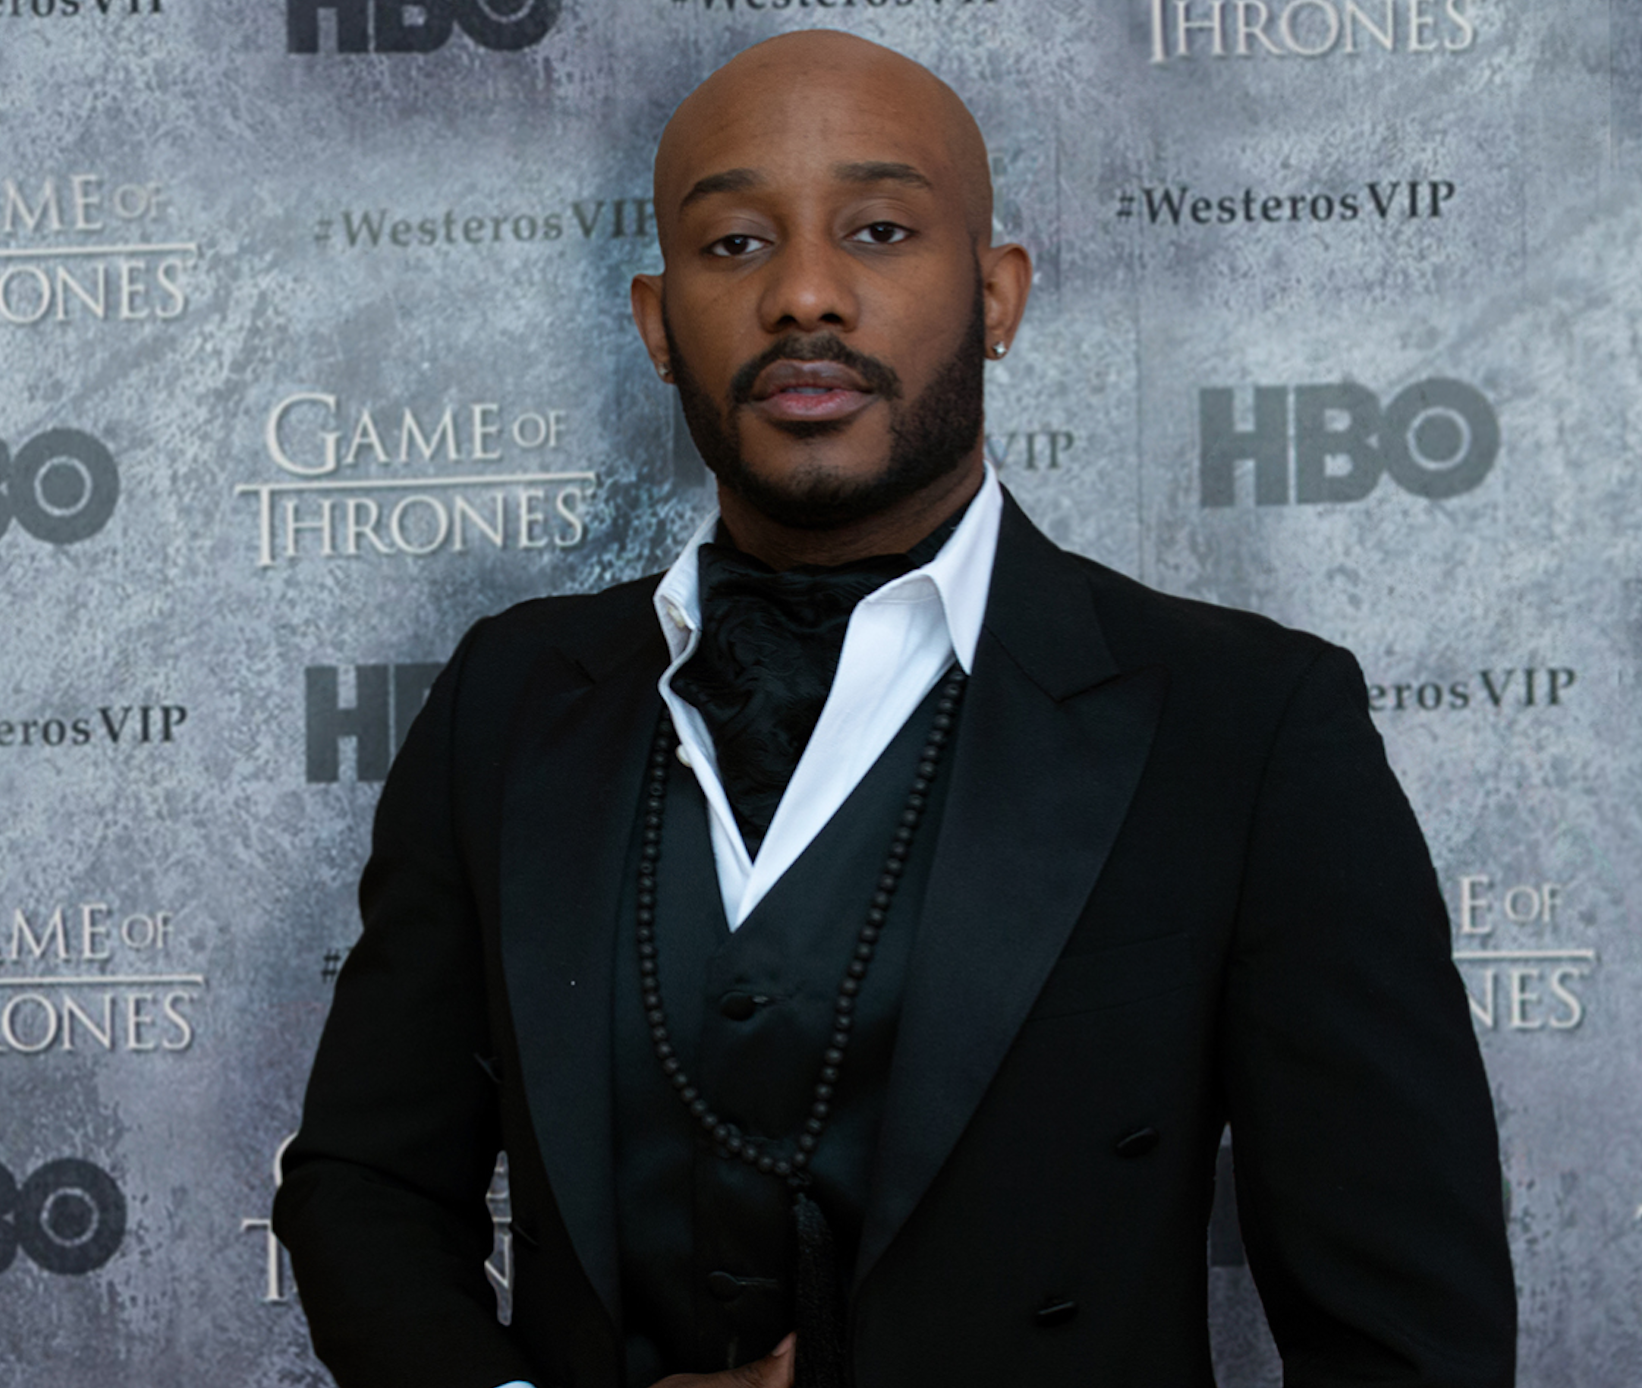 """Director Spotlight: - """"A Master of Film and Fine Art, Gino Payne spent his 20s working on commercial advertisements and music videos. Many of his first projects after film school music videos for Pastor Troy, The Outlawz, Gucci Man and other. His work won him recognition and a number of A.U.M.A.S awards. He also filmed advertisements for Marco and The Legends Football League Atlanta Steam Franchise. In 2011 he also directed his first feature film, We Was HomeBoyz (2011), Starring Pastor Troy and Shawty Low. His follow-up project, Birds of A Feather where he was Director of Photography served to continue the momentum. That year he worked with Painthall Studios on """"Game of Thrones"""" before returning to Atlanta to work on """"The Walking Dead."""" In early 2013 Gino Payne joined the Legends Football League (LFL) in Las Vegas where he has been credited for developing it's """"The Story"""" series into a critically acclaimed sports documentary series. Since a reduced role with the LFL Gino has gone on to be the Technical Director of the Outdoor Channel's Golden Moose Award, and Produce the infamous Vegas nightlife TV Show """"The Damon Elliott Show"""" seen on CW Network's MyLVTV. While working with the LFL in Australia he developed several key relationships one of which landed him as the signature Media director for brands such as """"GRRRL"""". In 2016 Gino teamed with a myriad of talented artist to create the scripted series """"Half Untold."""" In 2018 """"Half UnTold was still in development when the release of """"GRRRL: Beauty Is The Beast"""" landed Gino Payne 6 Telly Award nominations. Gino is currently dedicated to developing compelling content with """"360 Films"""" his independent production house.""""WWW.GINOPAYNE.COM"""